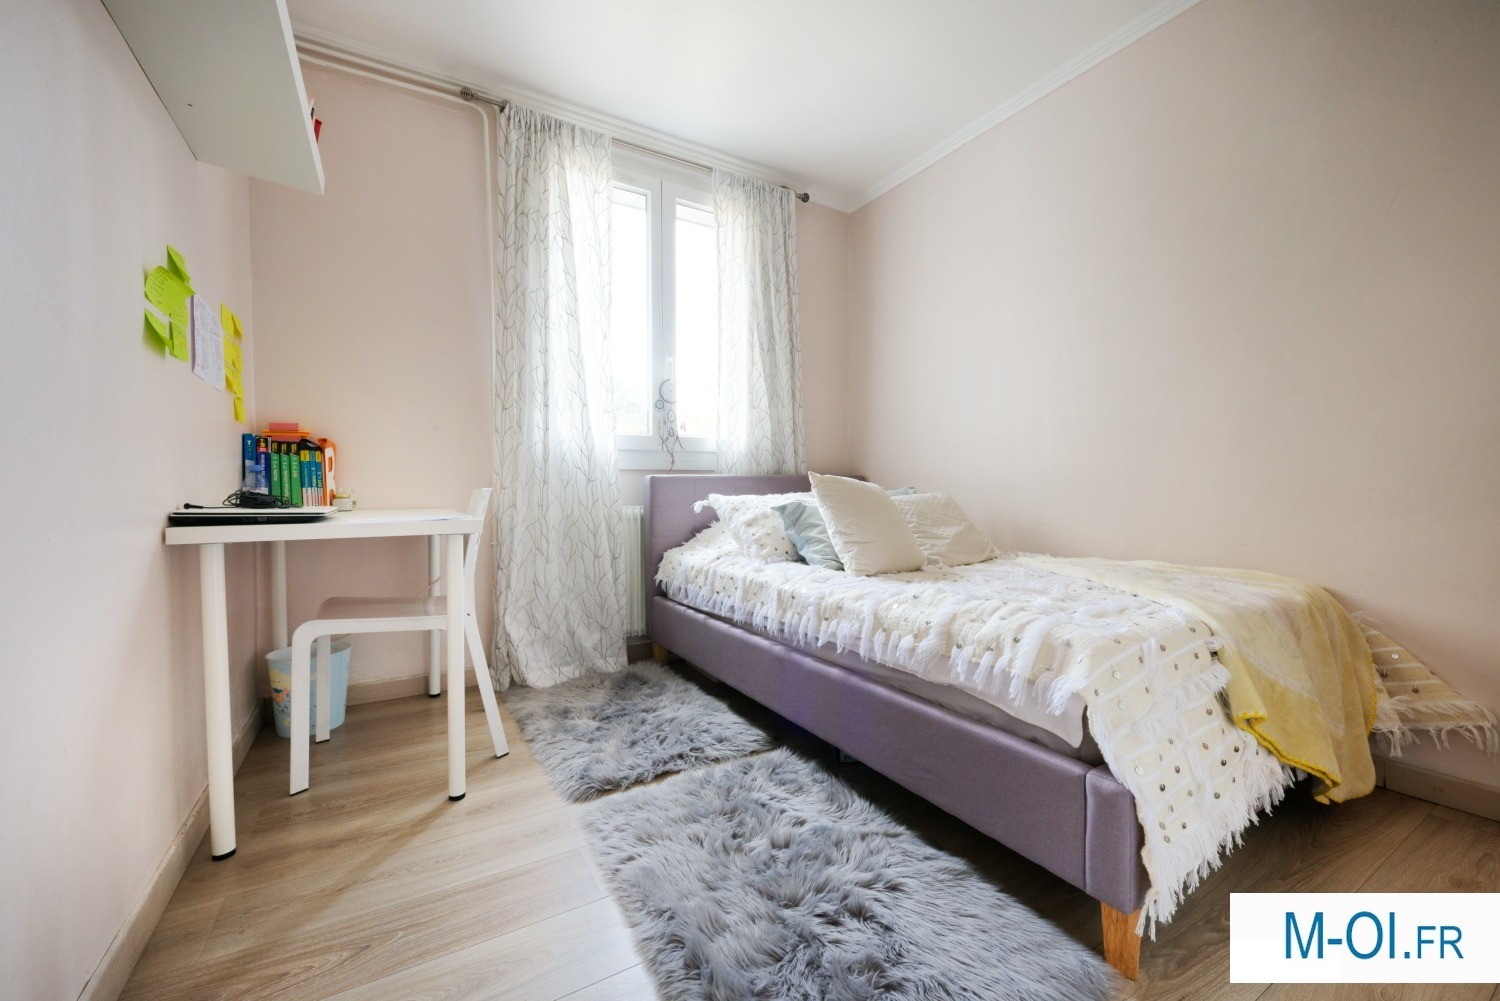 13015-marseille-vente-appartement-4-pieces_3.jpg